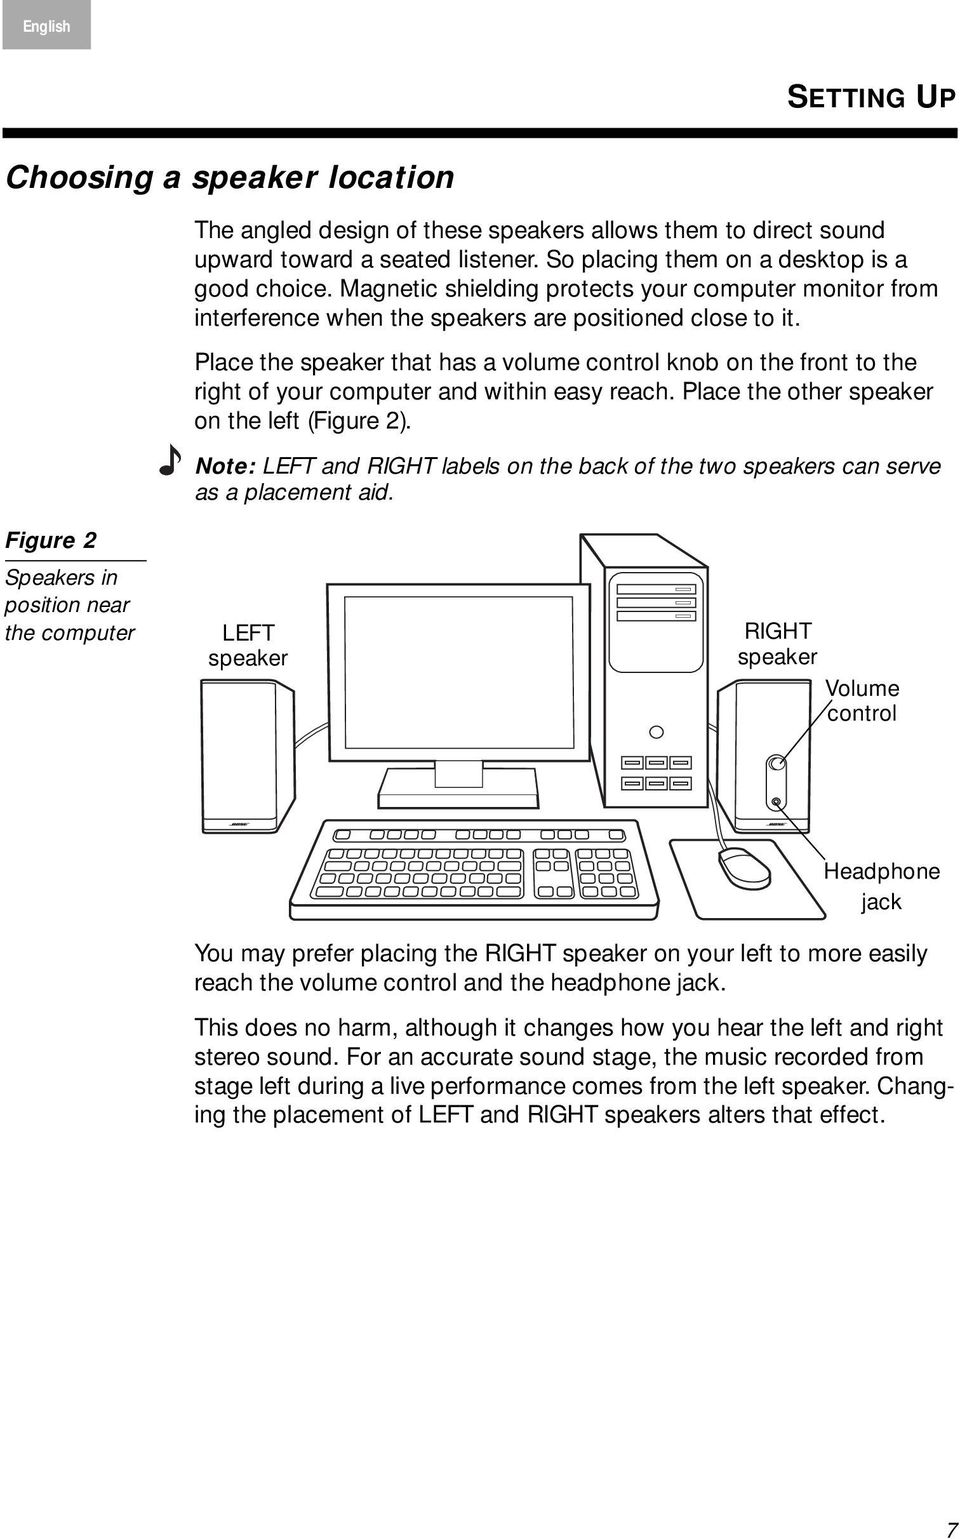 Place the that has a volume control knob on the front to the right of your computer and within easy reach. Place the other on the left (Figure 2).